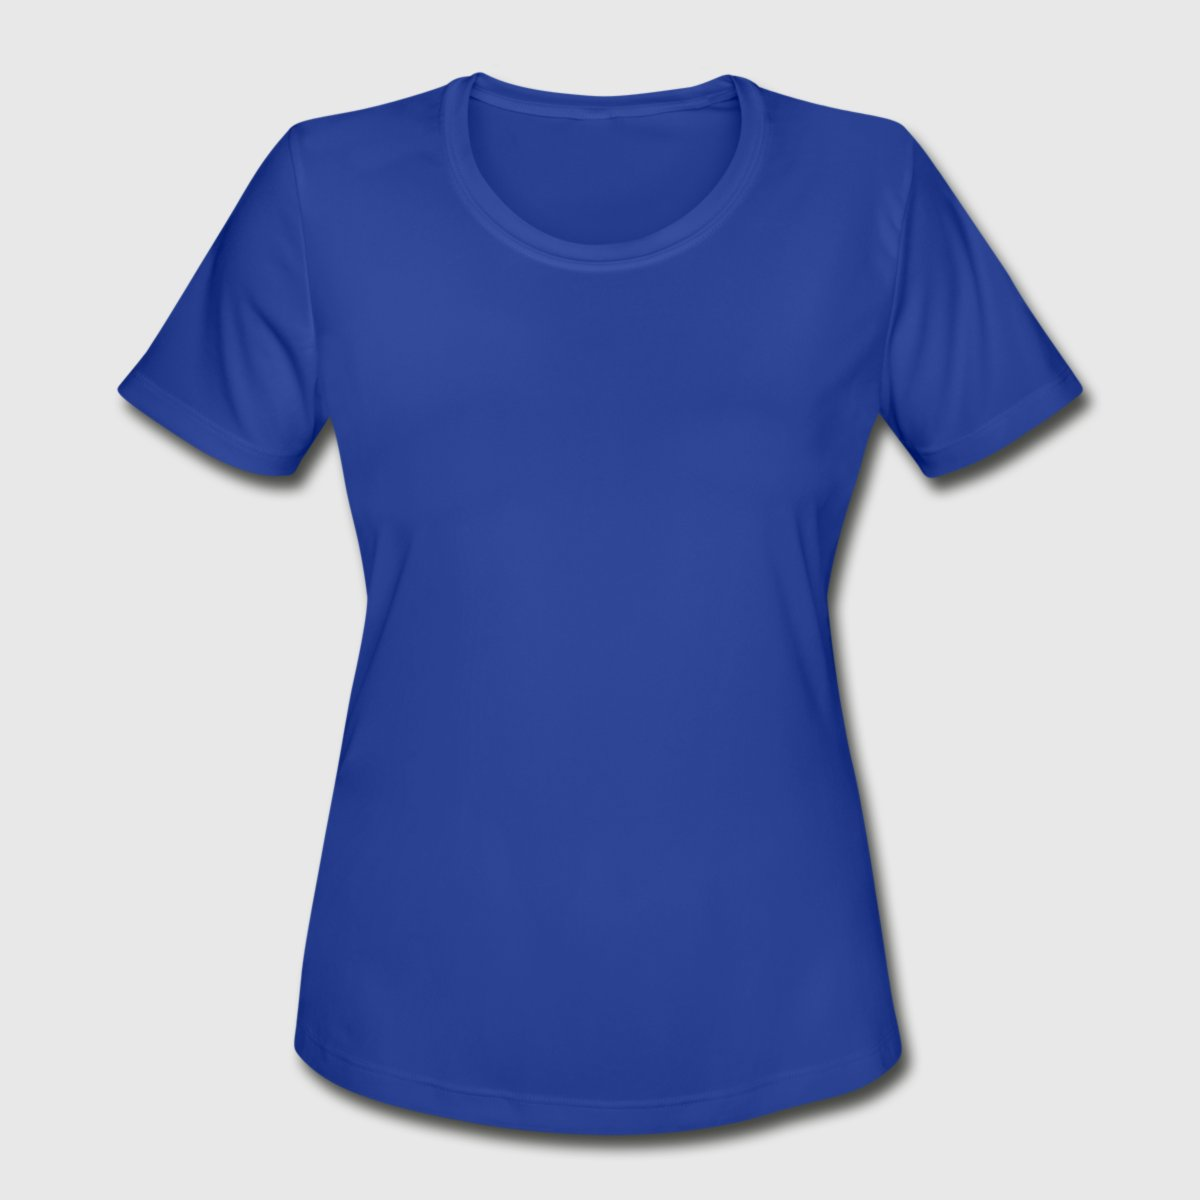 Women's Moisture Wicking Performance T-Shirt - Front